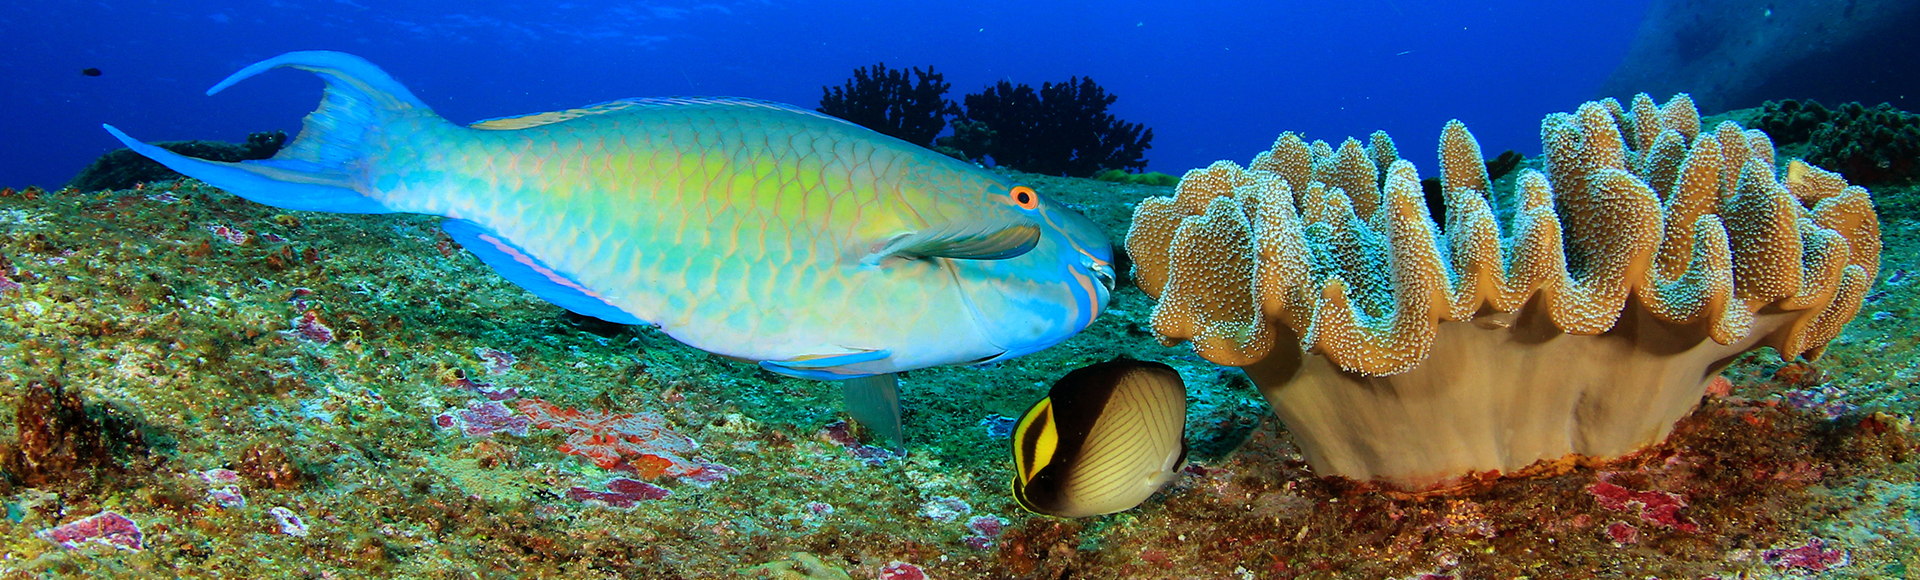 Parrotfish graze on the algae on reefs, allowing corals to grow without competing for space. Photo credit: Caradonna Adventures